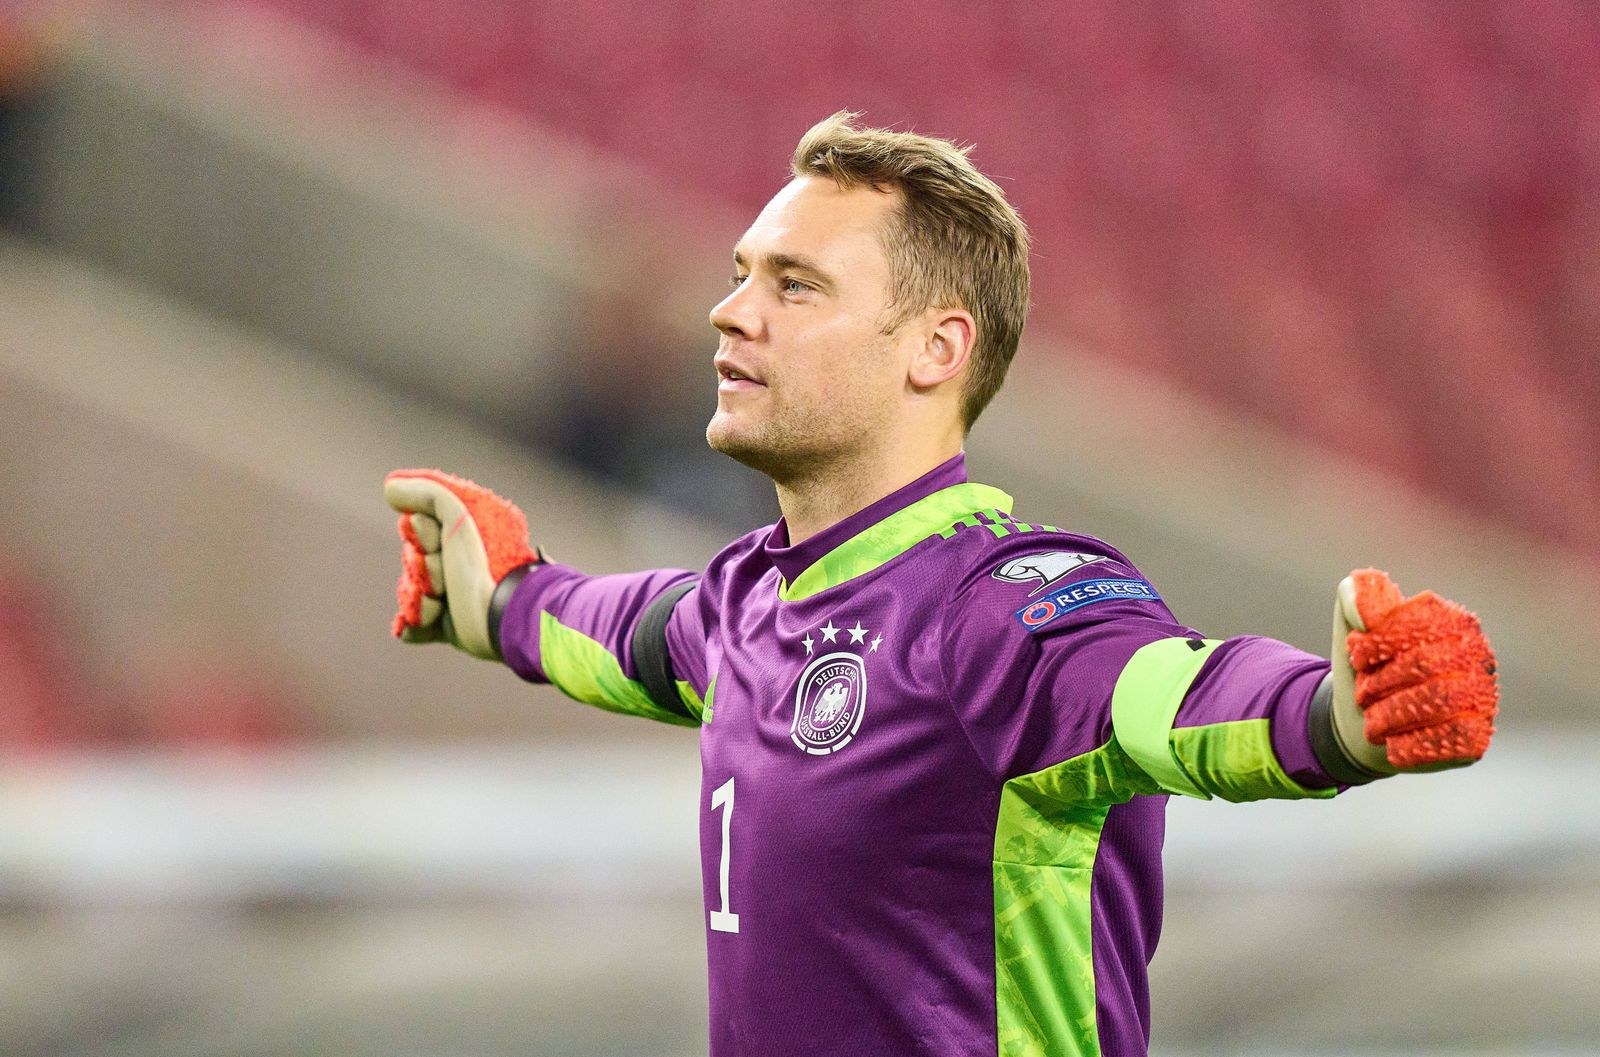 Manuel NEUER, DFB 1 goalkeeper, celebrate 4-0 goal in the match GERMANY - ARMENIA Qualification for World Championships